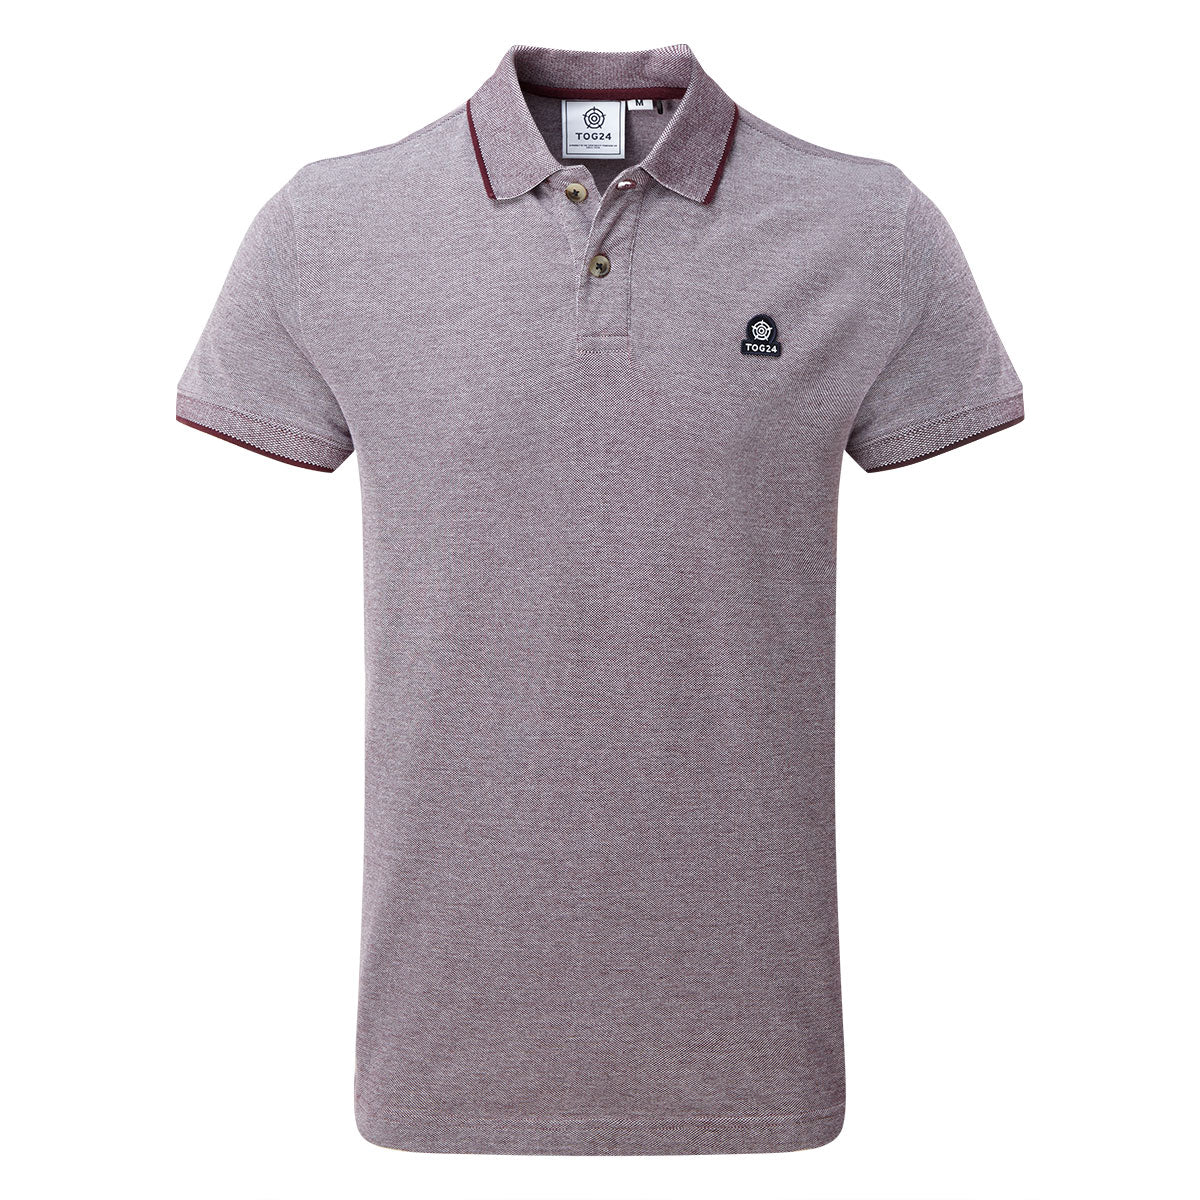 Patrick Mens Stripe Polo Shirt - Deep Port